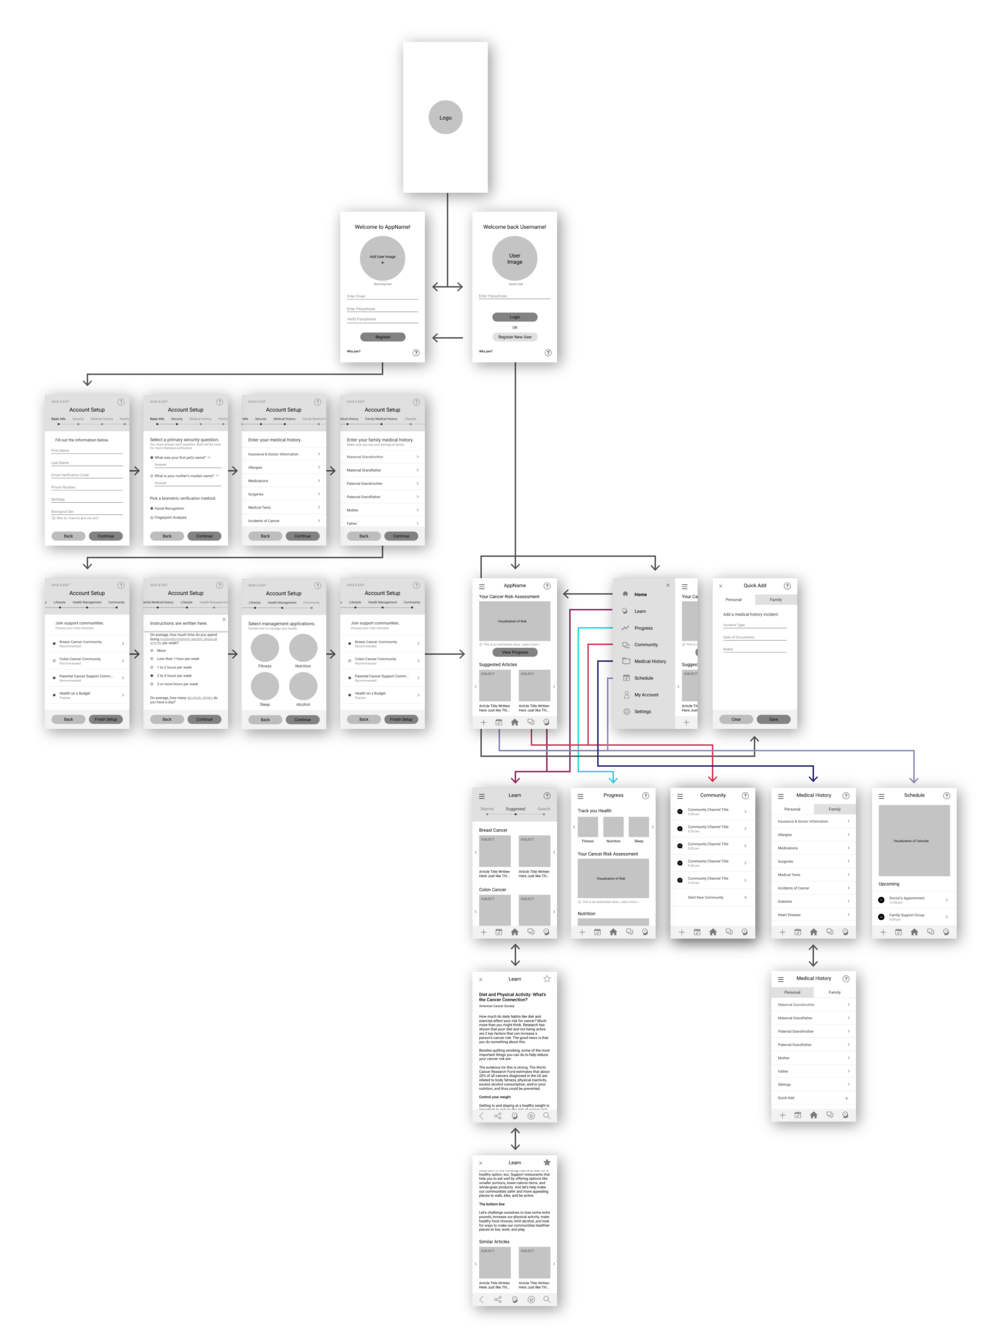 User Flow + Wireframes - Key Interactions